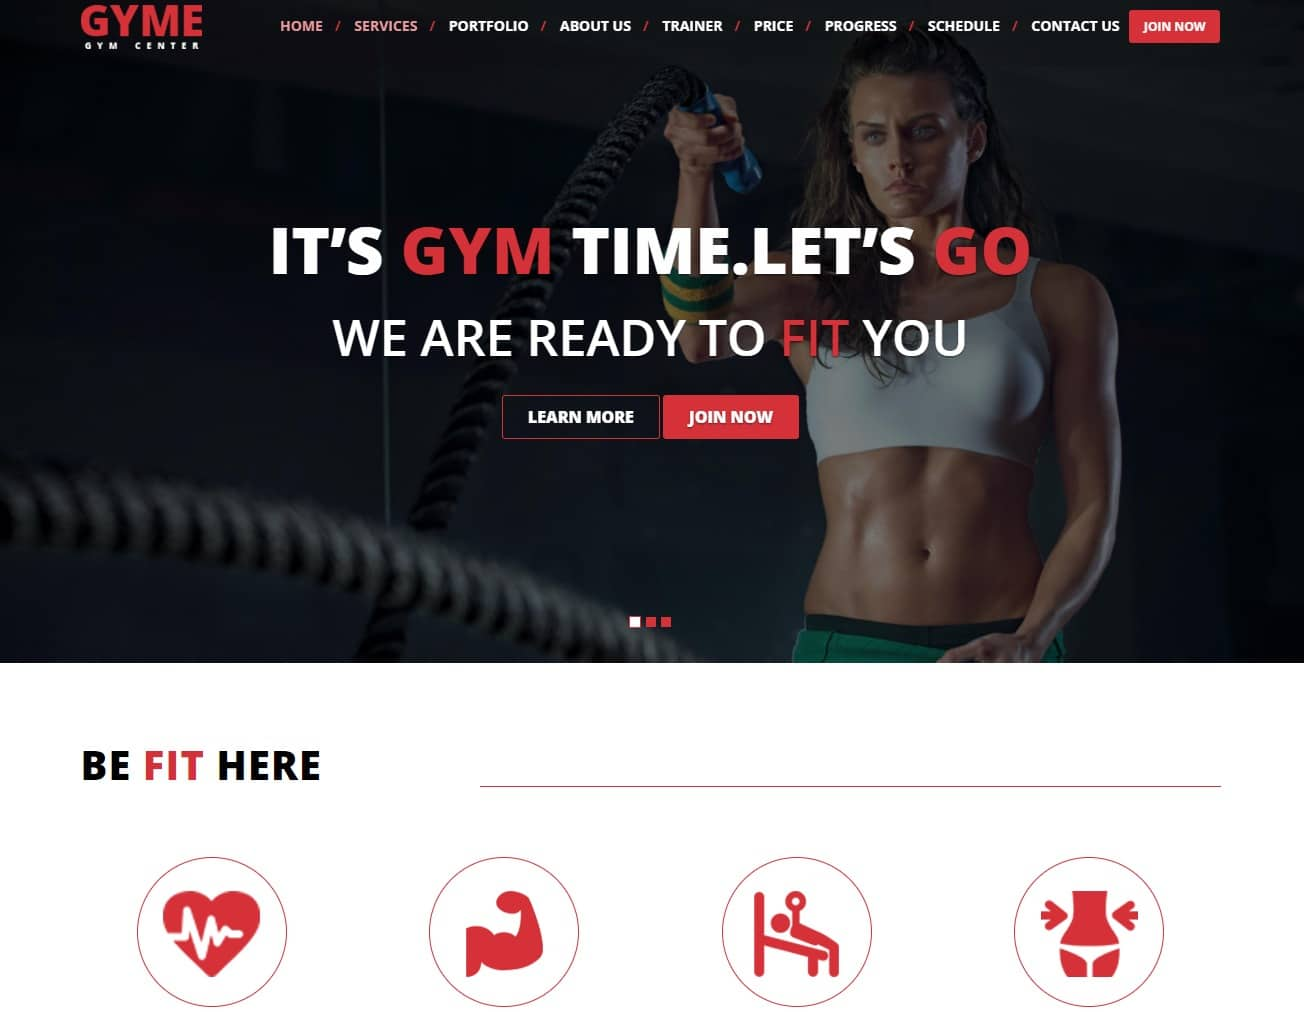 gyme-fitness-website-templates